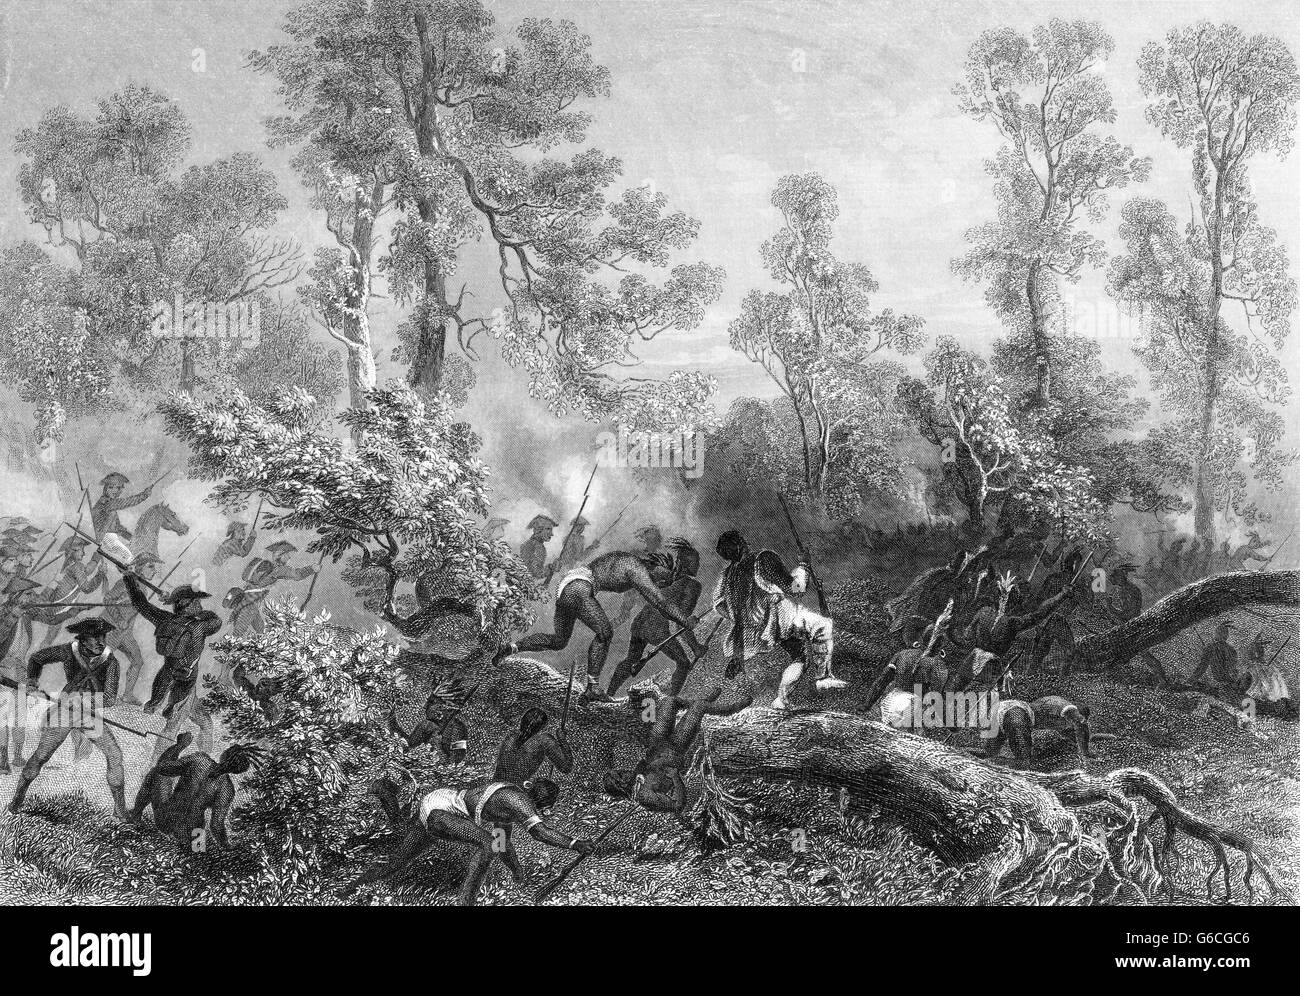 JANUARY 1791 AMERICAN TROOPS FIGHTING NATIVE AMERICAN INDIANS BATTLE OF MIAMI OHIO - Stock Image